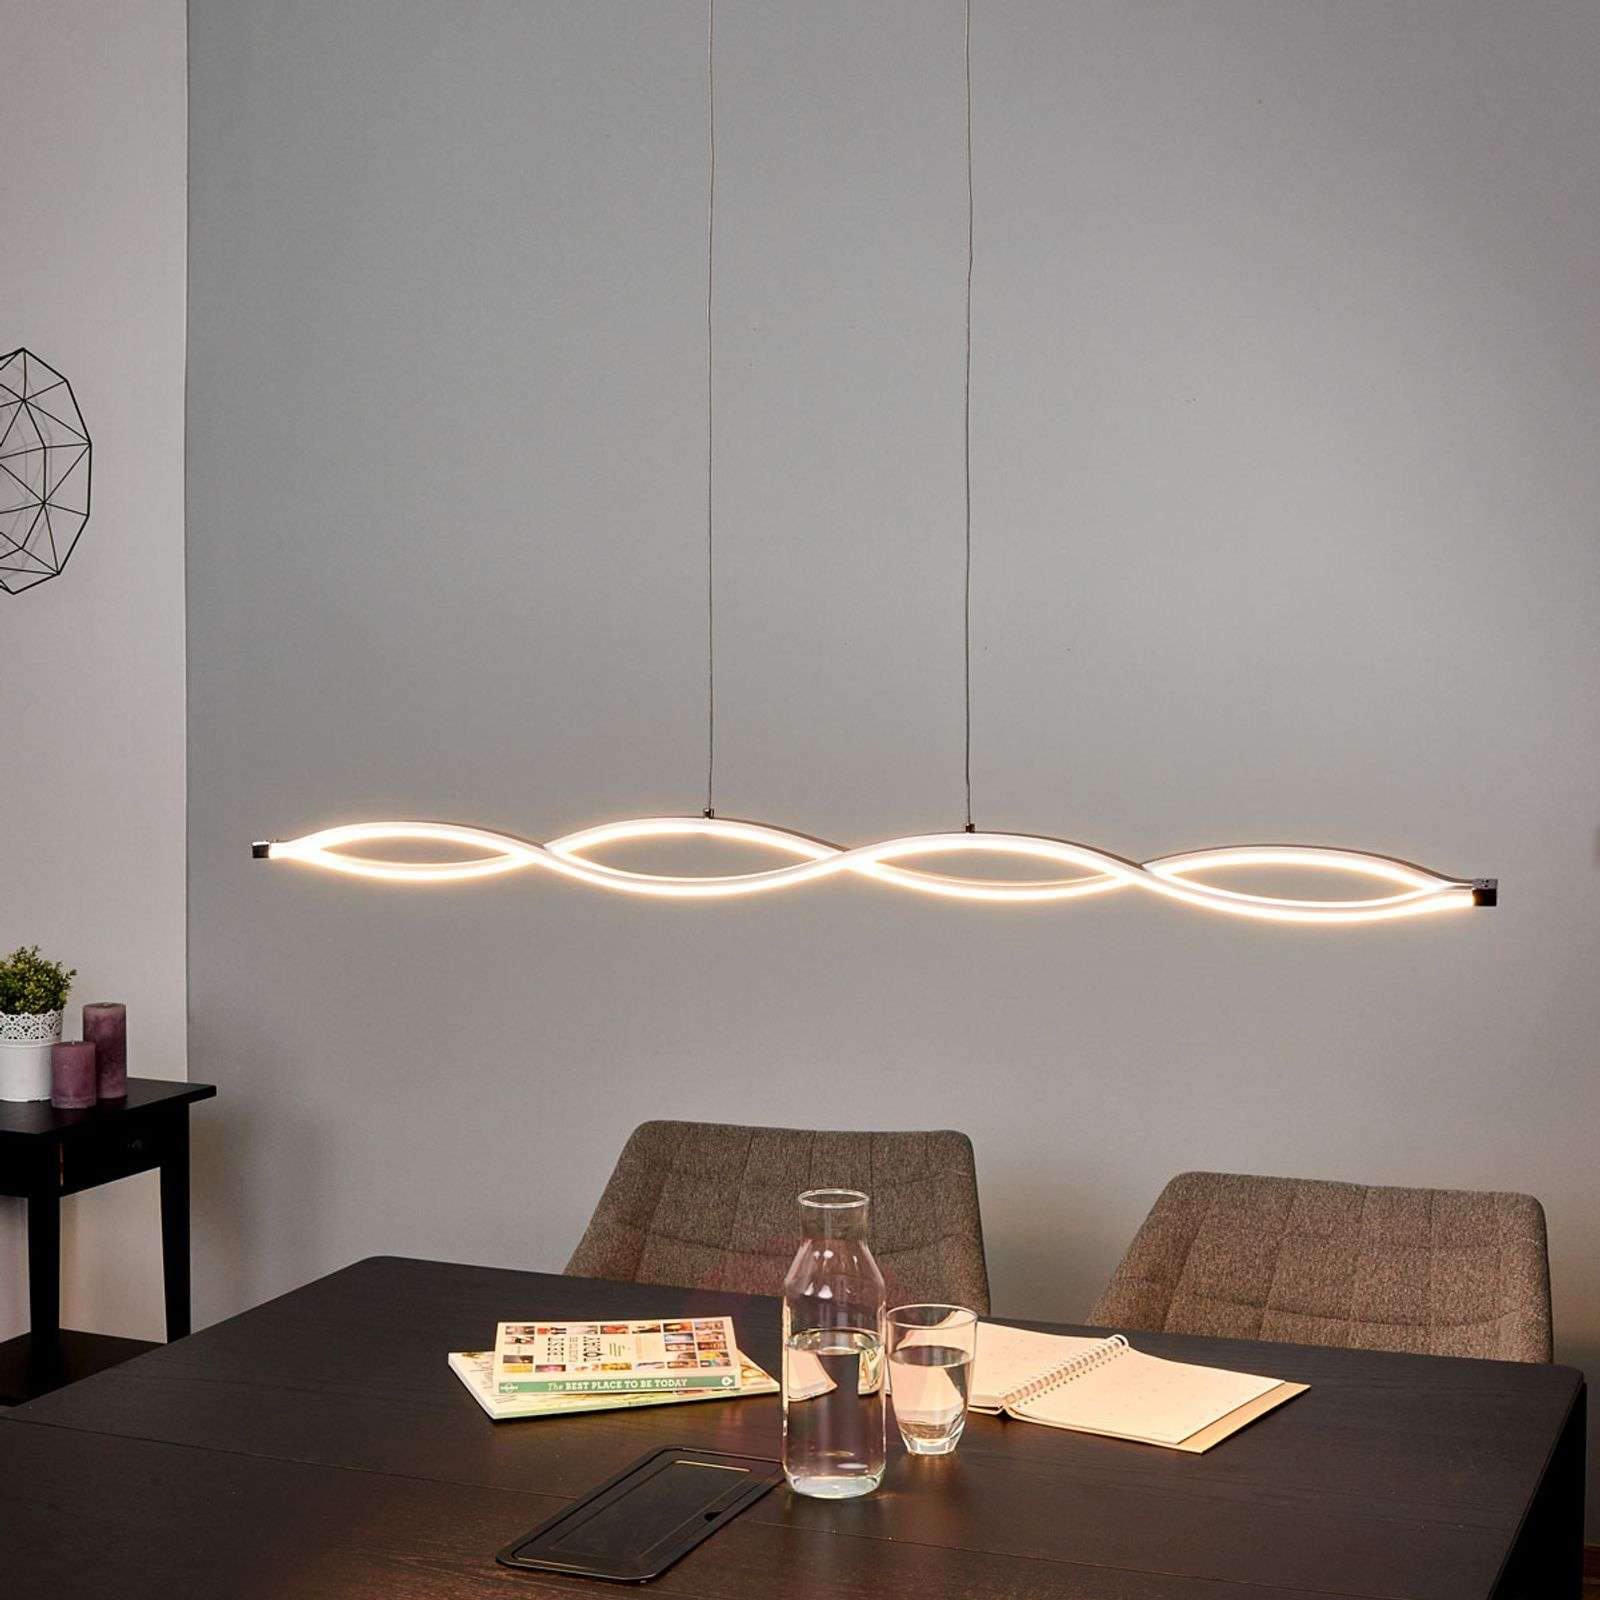 Suspension en forme de vague Tura LED vives-9640063-020